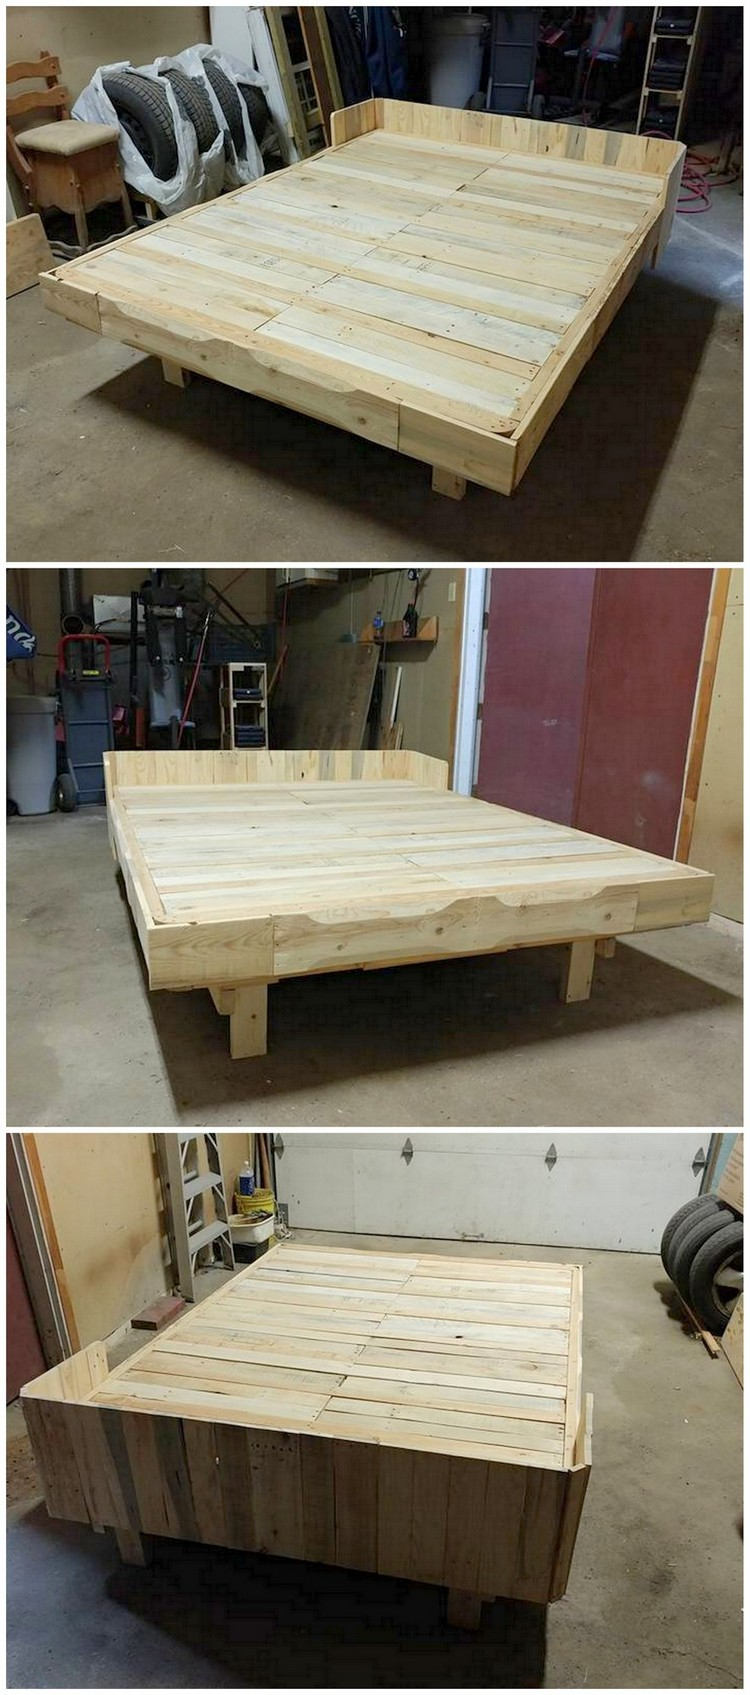 Genius ideas for reusing old wooden pallets pallet wood for Recycled pallet bed frame